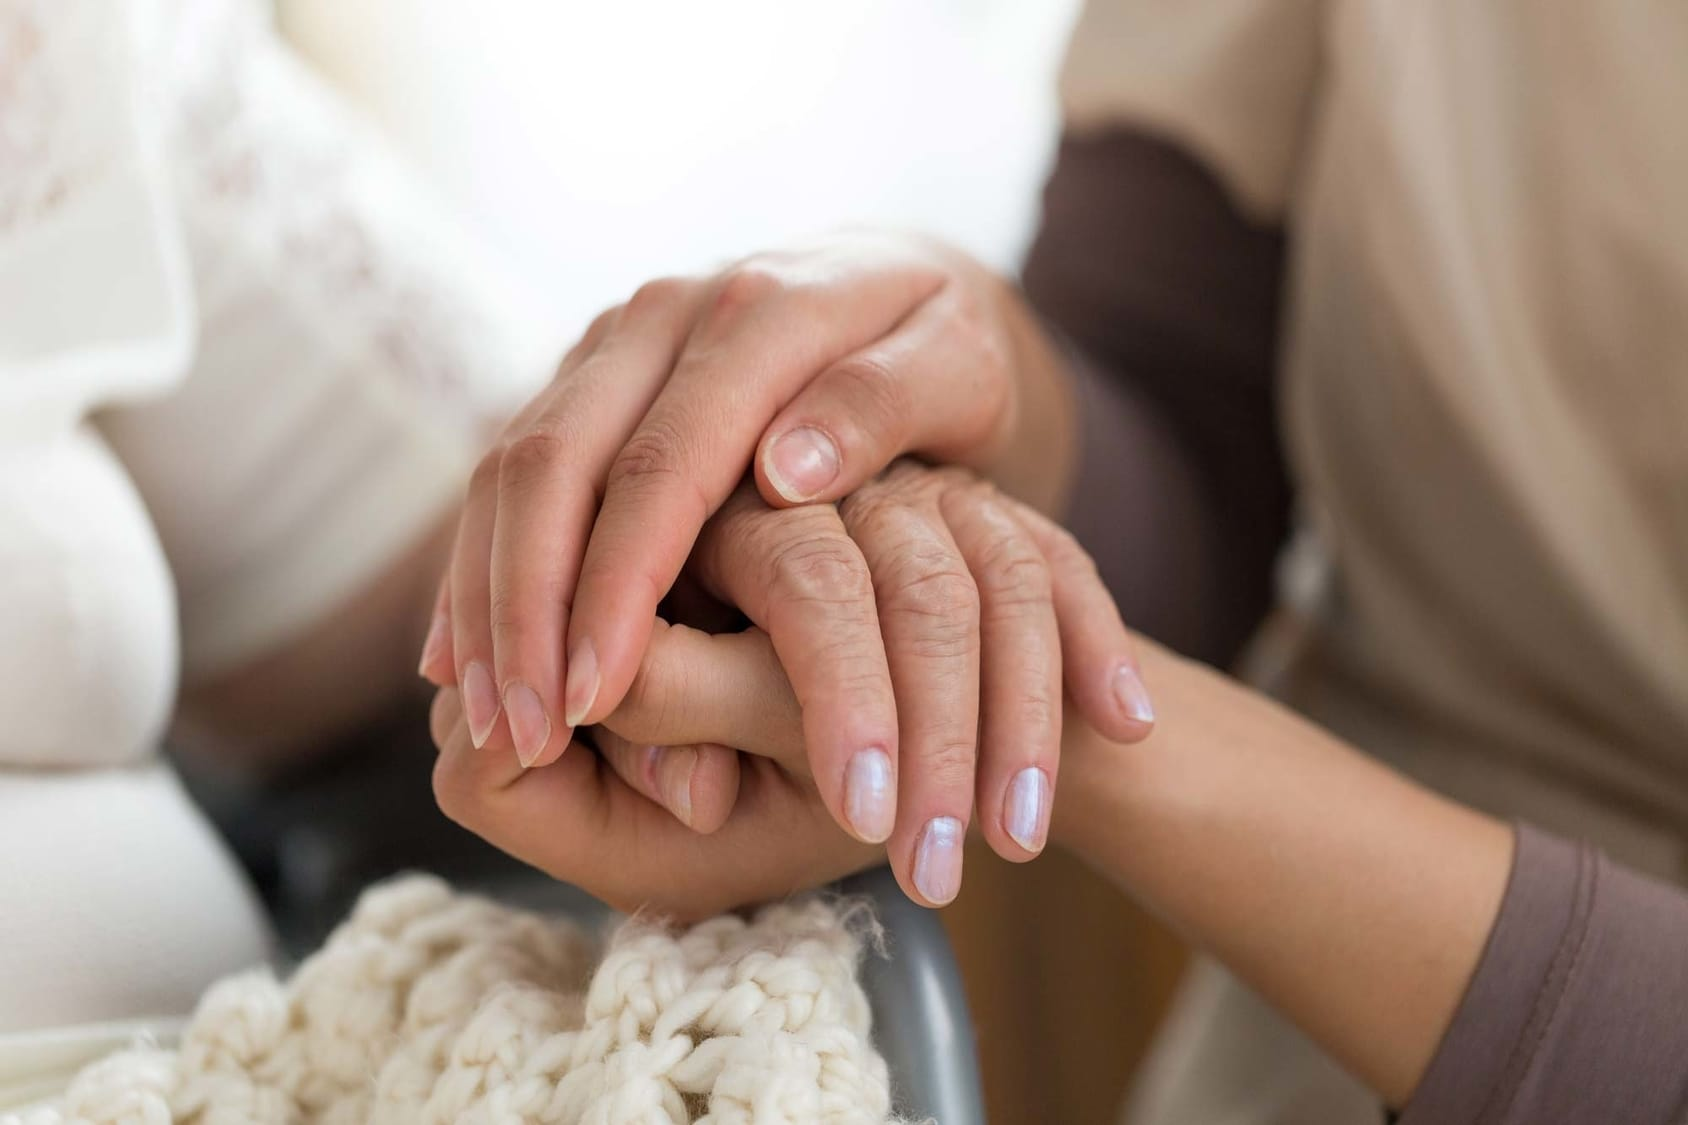 Close up of two women's hands holding each other